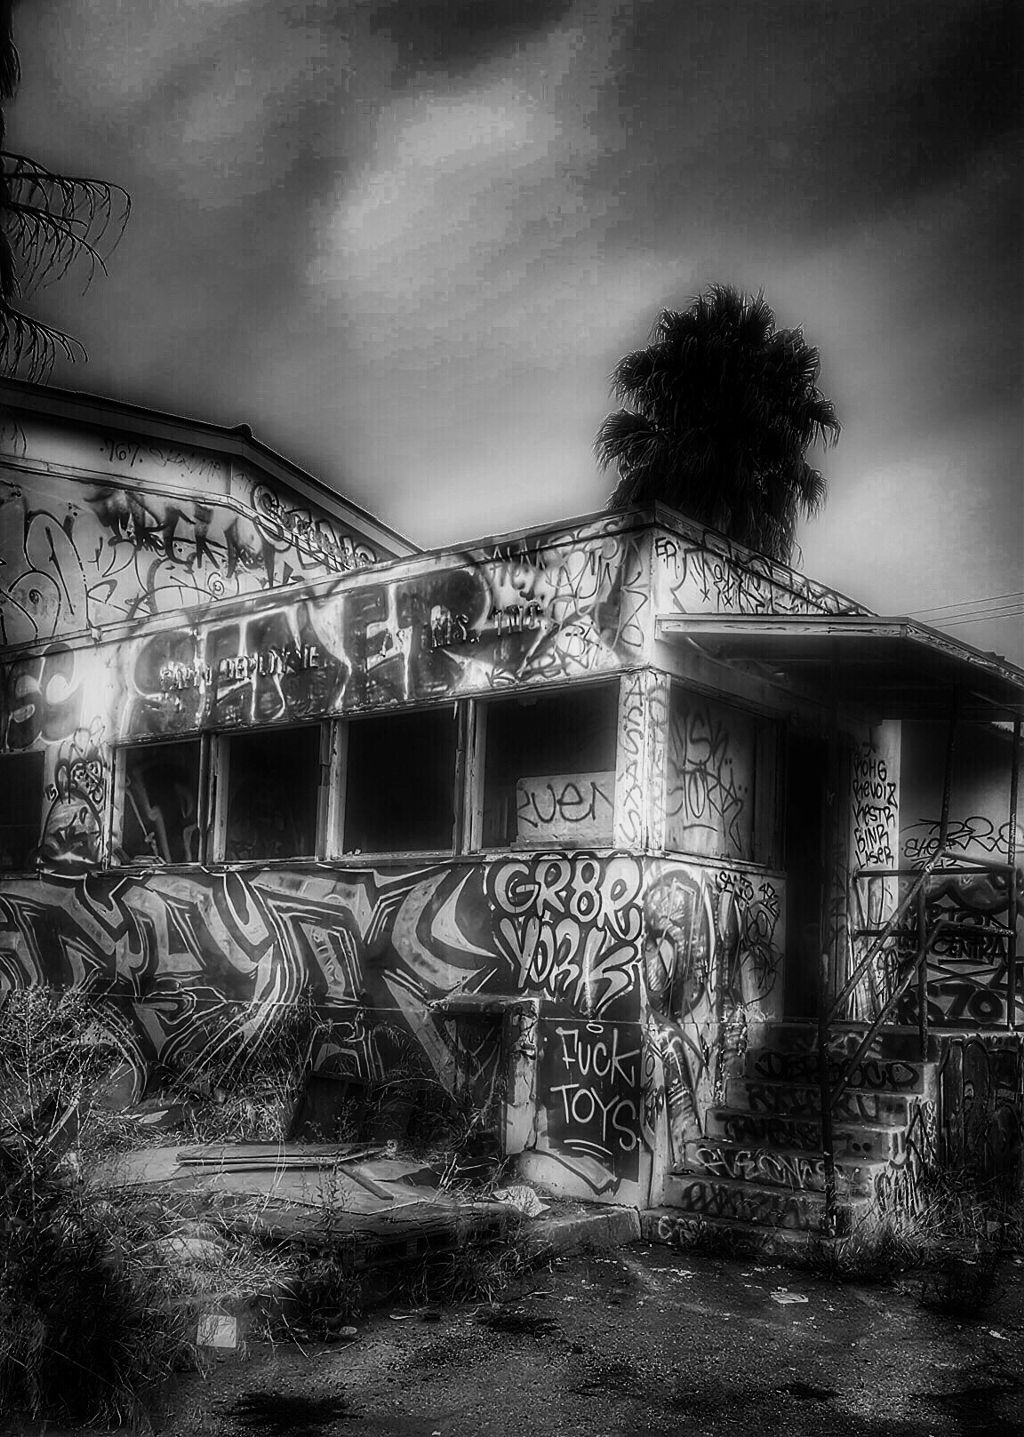 Abandoned graffiti